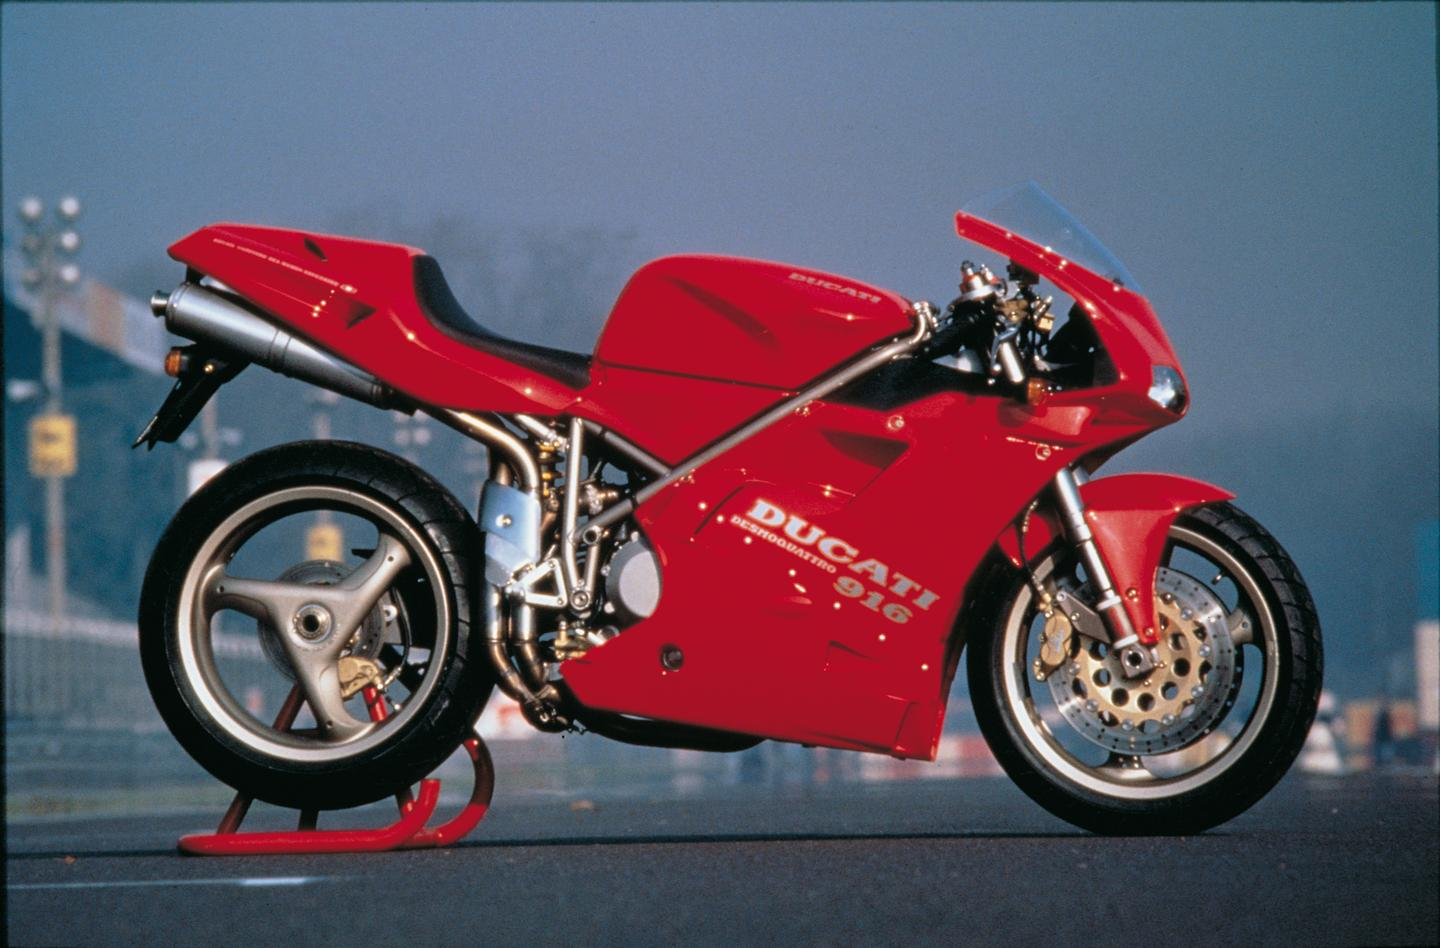 The original 916, with its eye-popping single sided swingarm